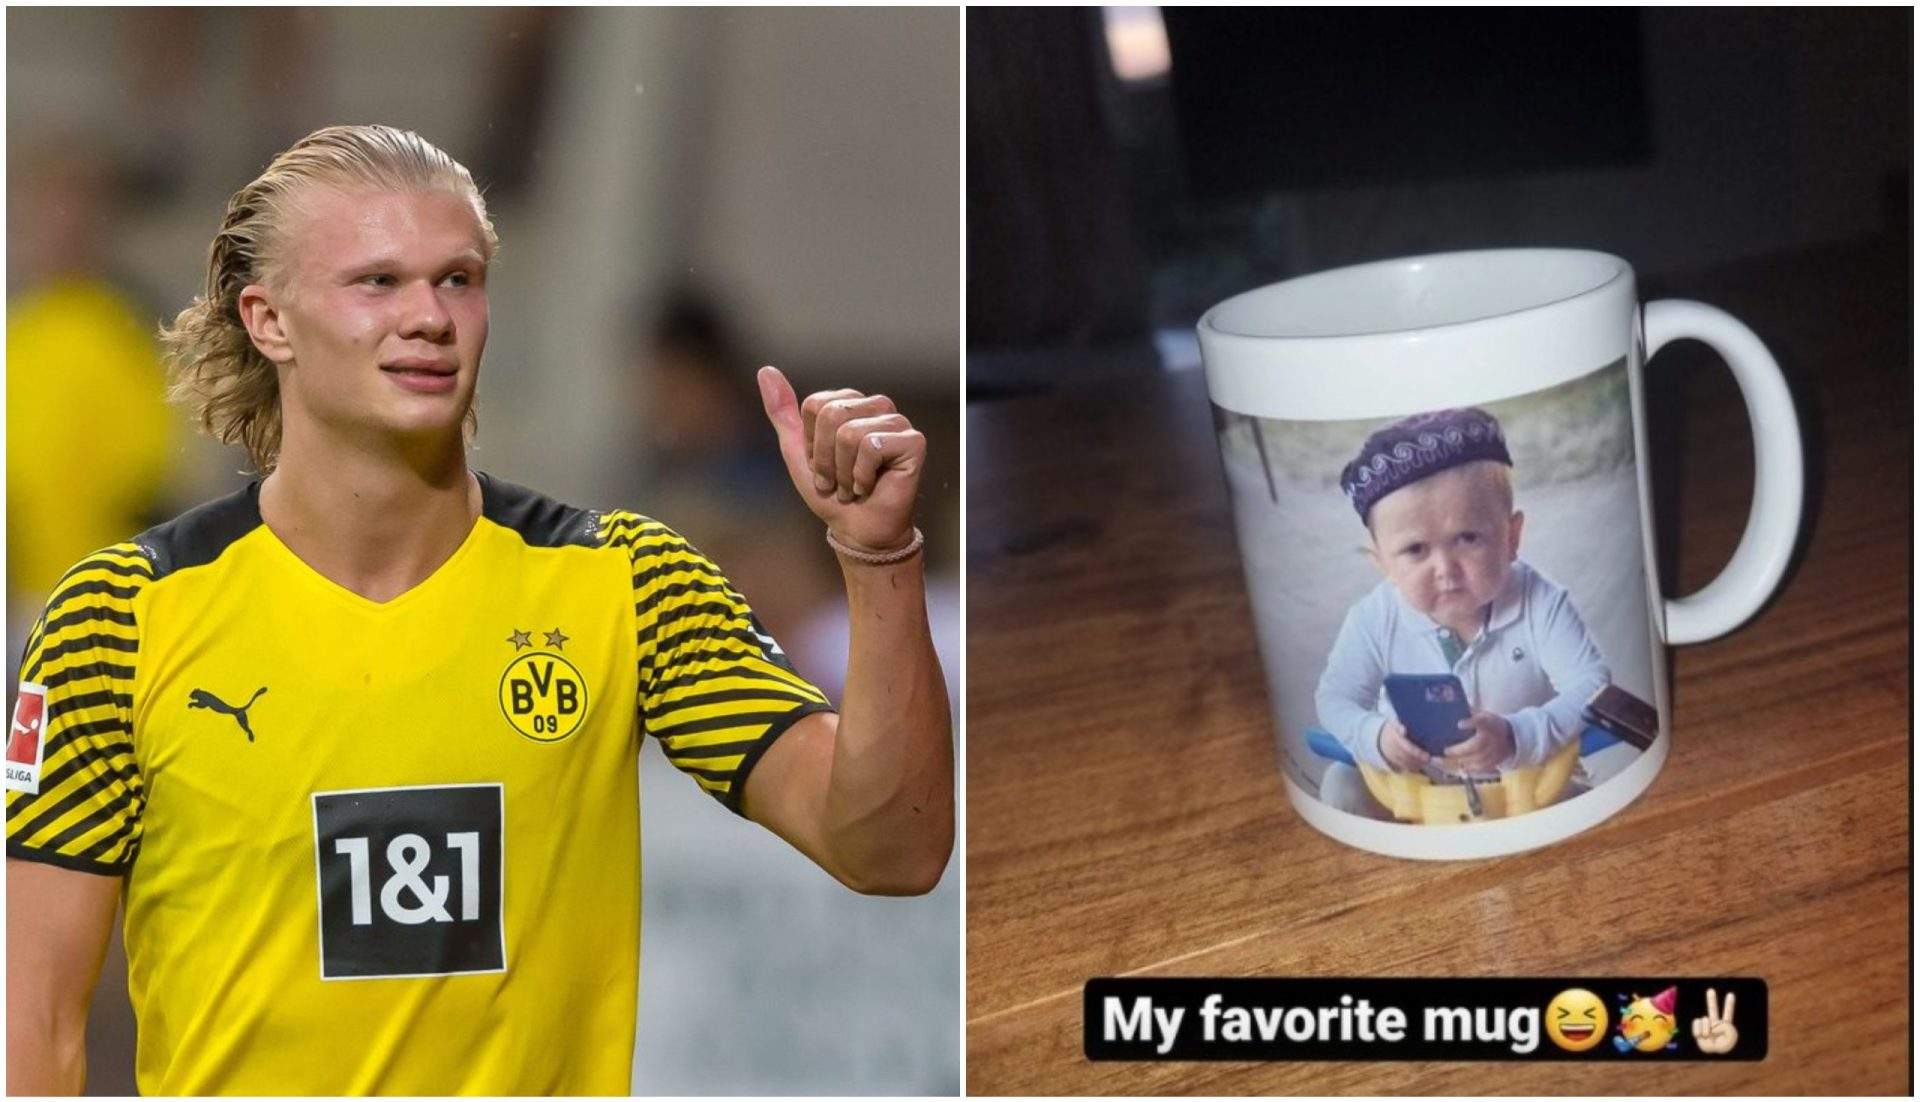 Erling Haaland is now the proud owner of a Hasbulla Mug! - THE SPORTS ROOM